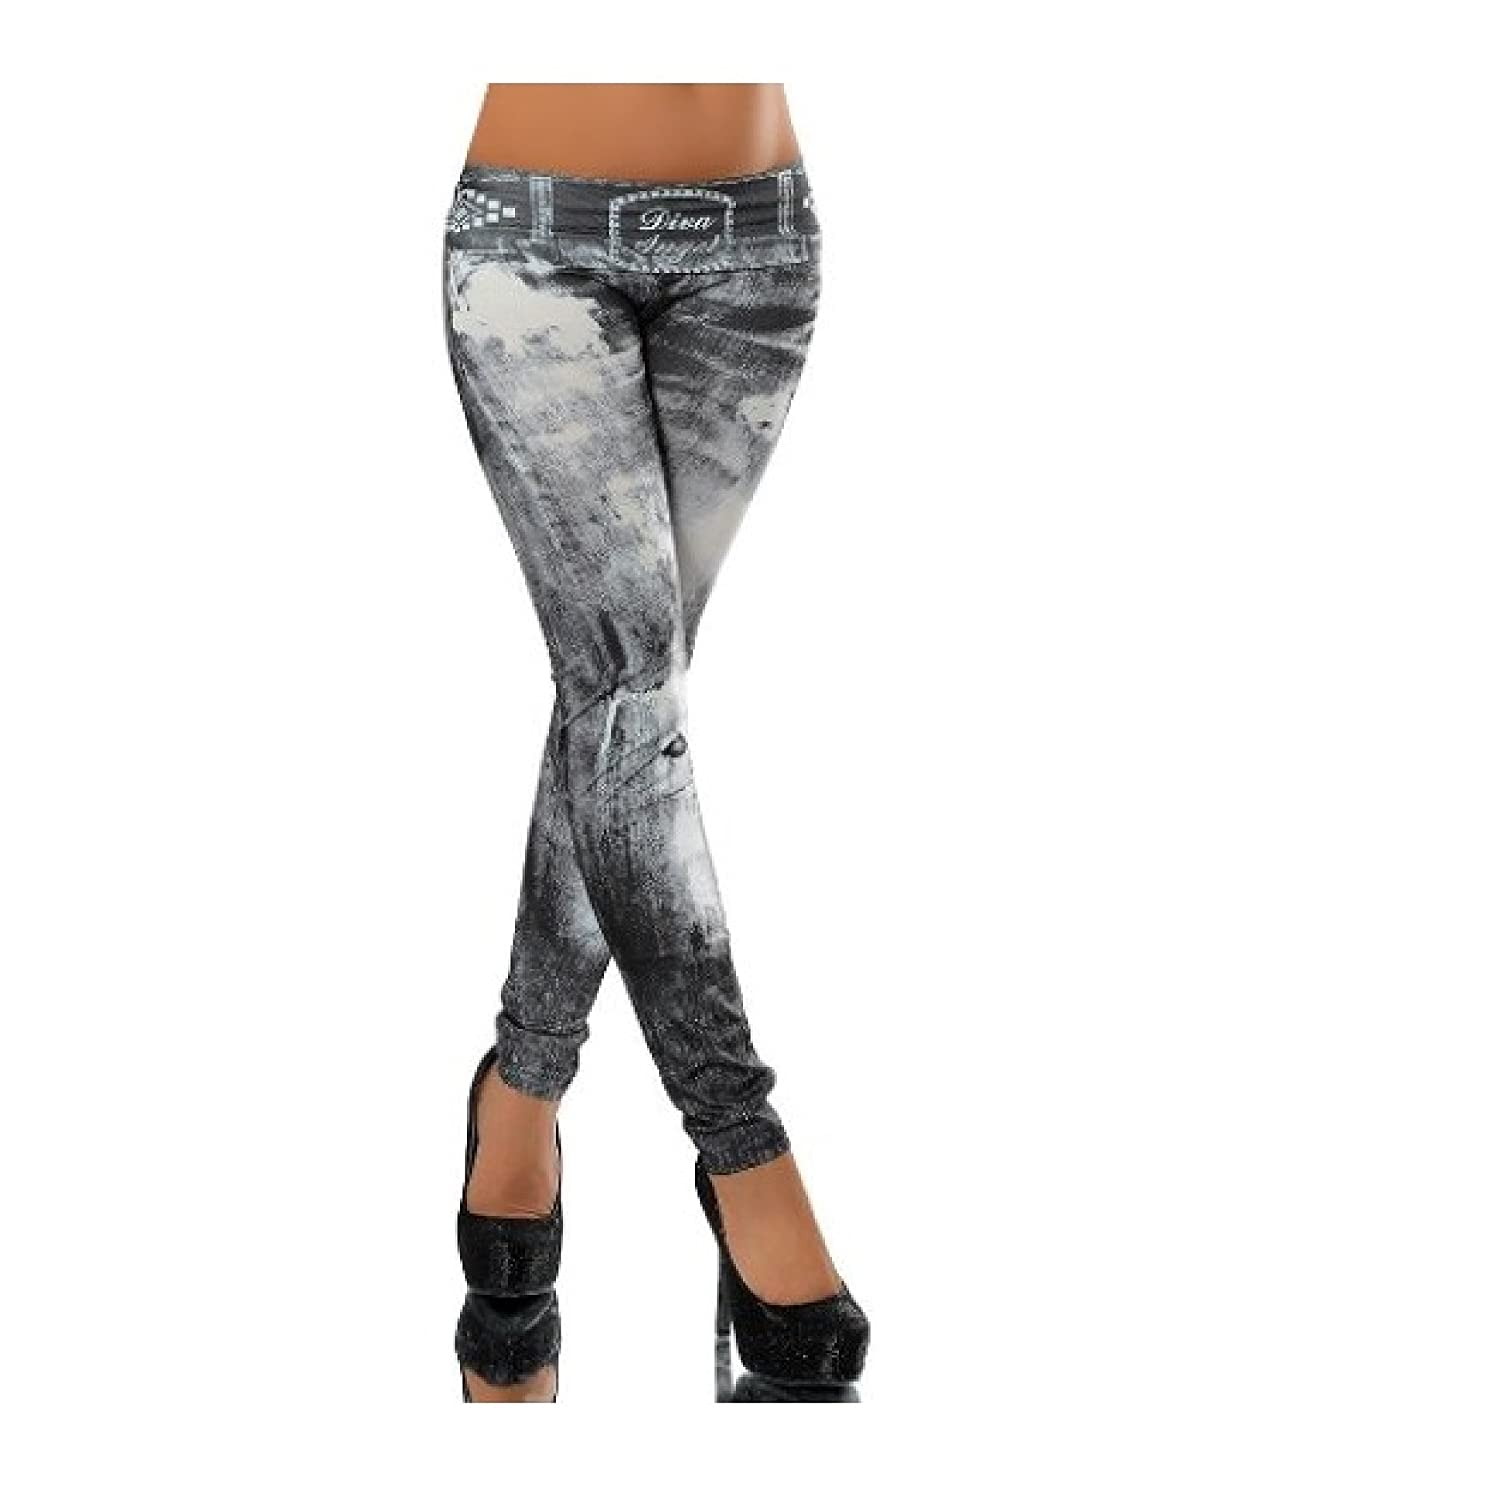 3f3fa89c1bcf6c G209 Damen Hose Leggings Röhre Jeggings